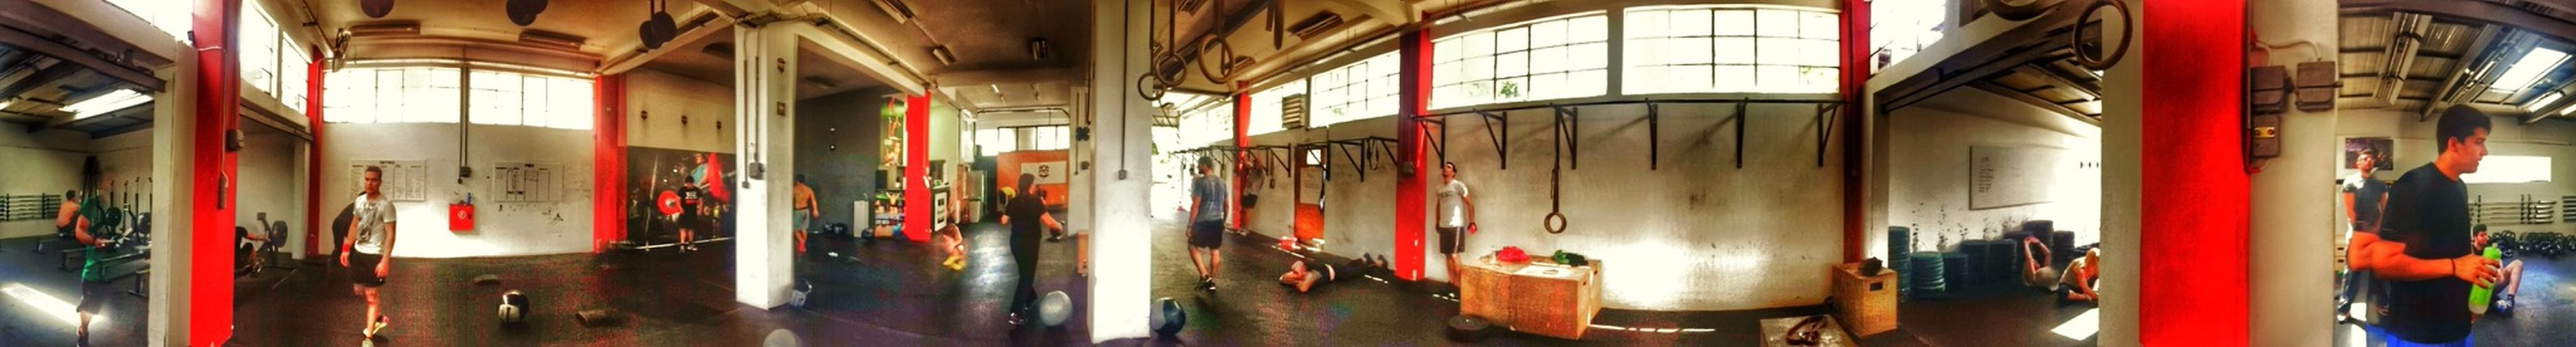 Crossfit Working Hard to keep fit